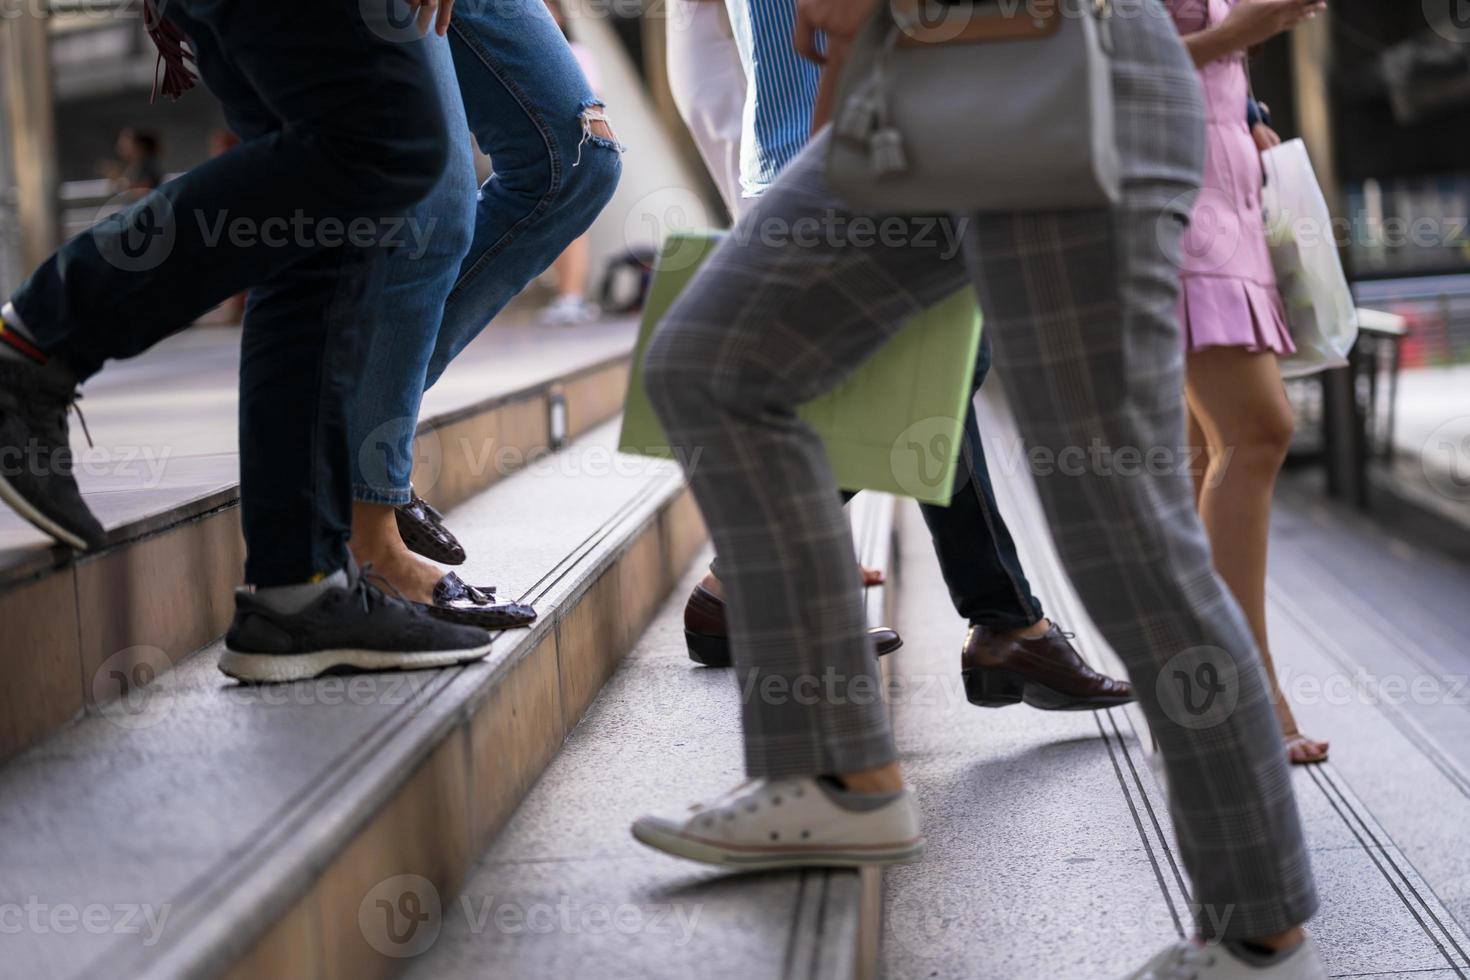 Close-up of people's feet walking on stairs photo